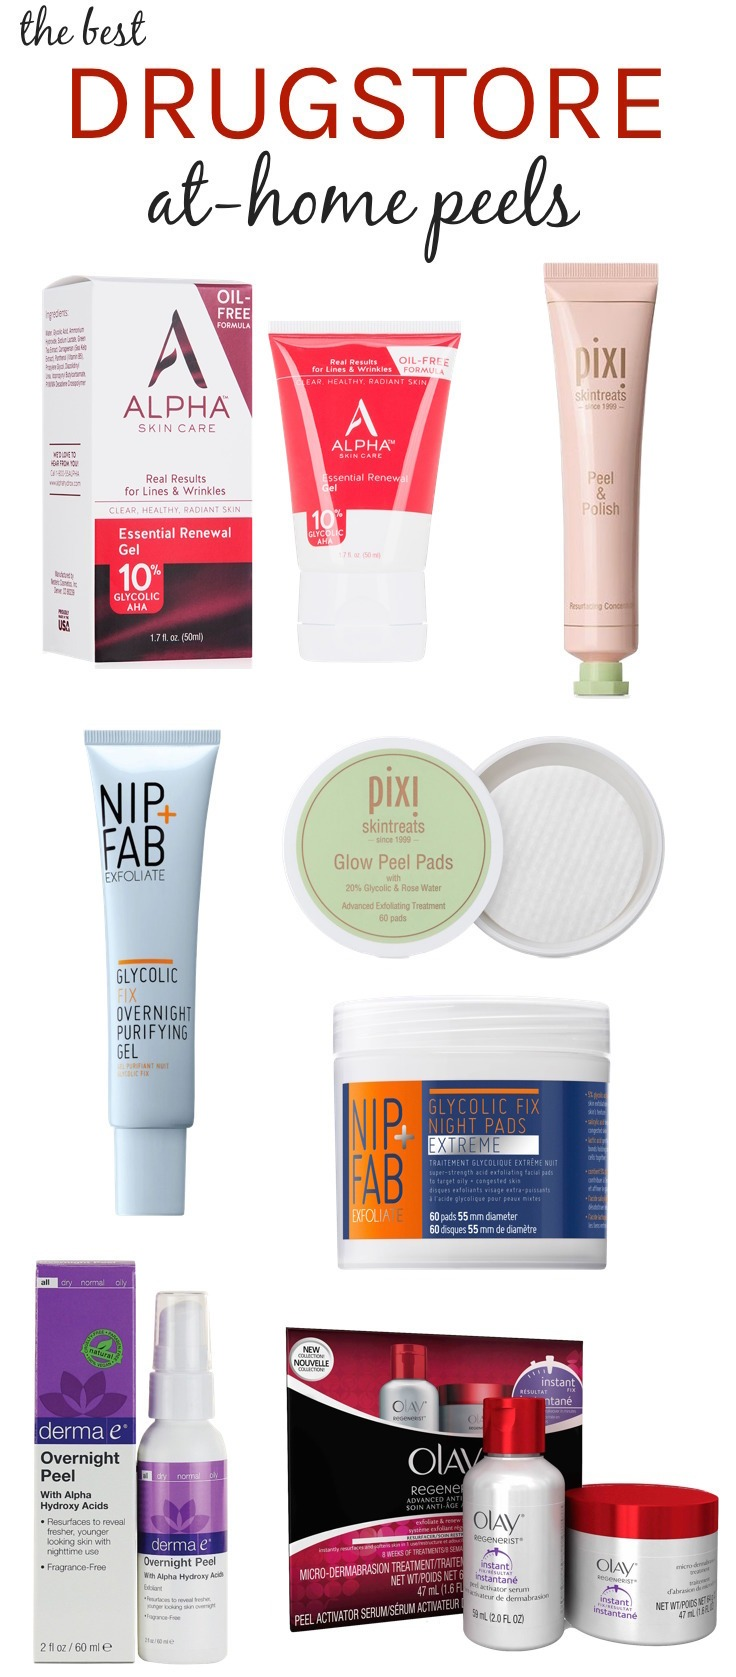 Best drugstore at-home peels for every skin type | From acne and blackheads to dark spots and dullness, these easy exfoliating treatments can tackle almost any skin concern!